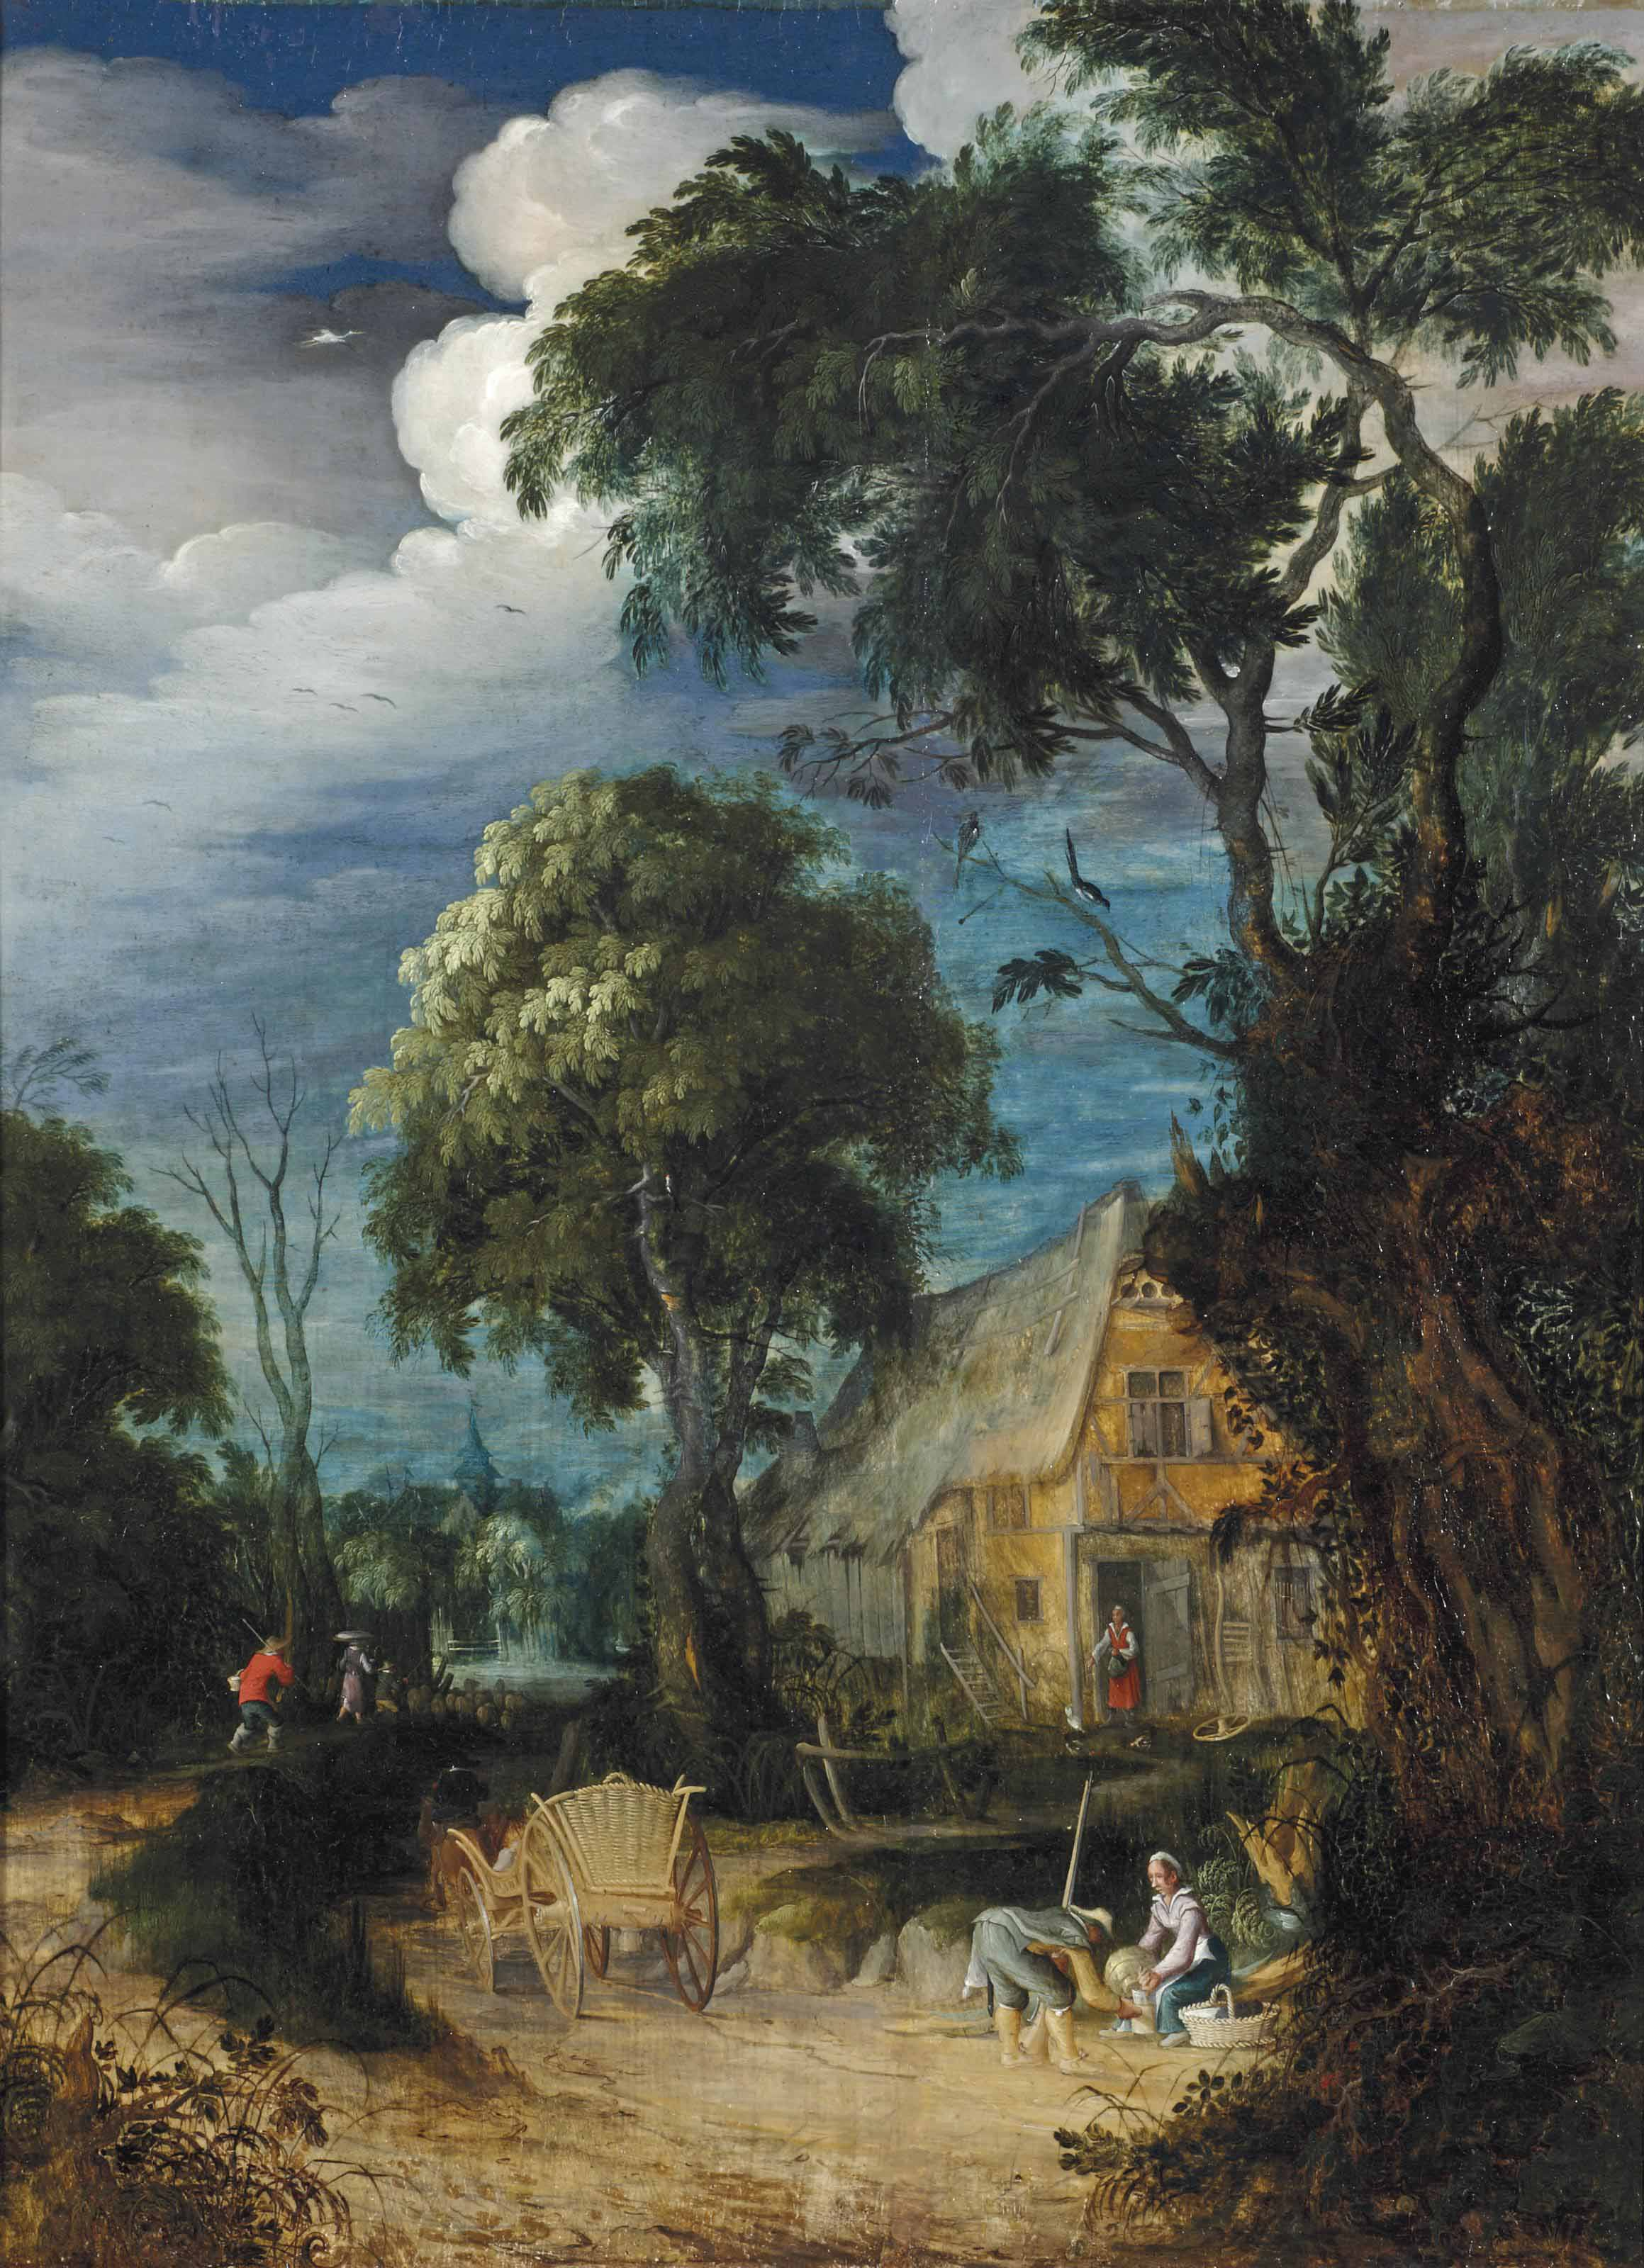 A wooded landscape with figures resting by a cottage, a horsedrawn cart and herdsmen nearby